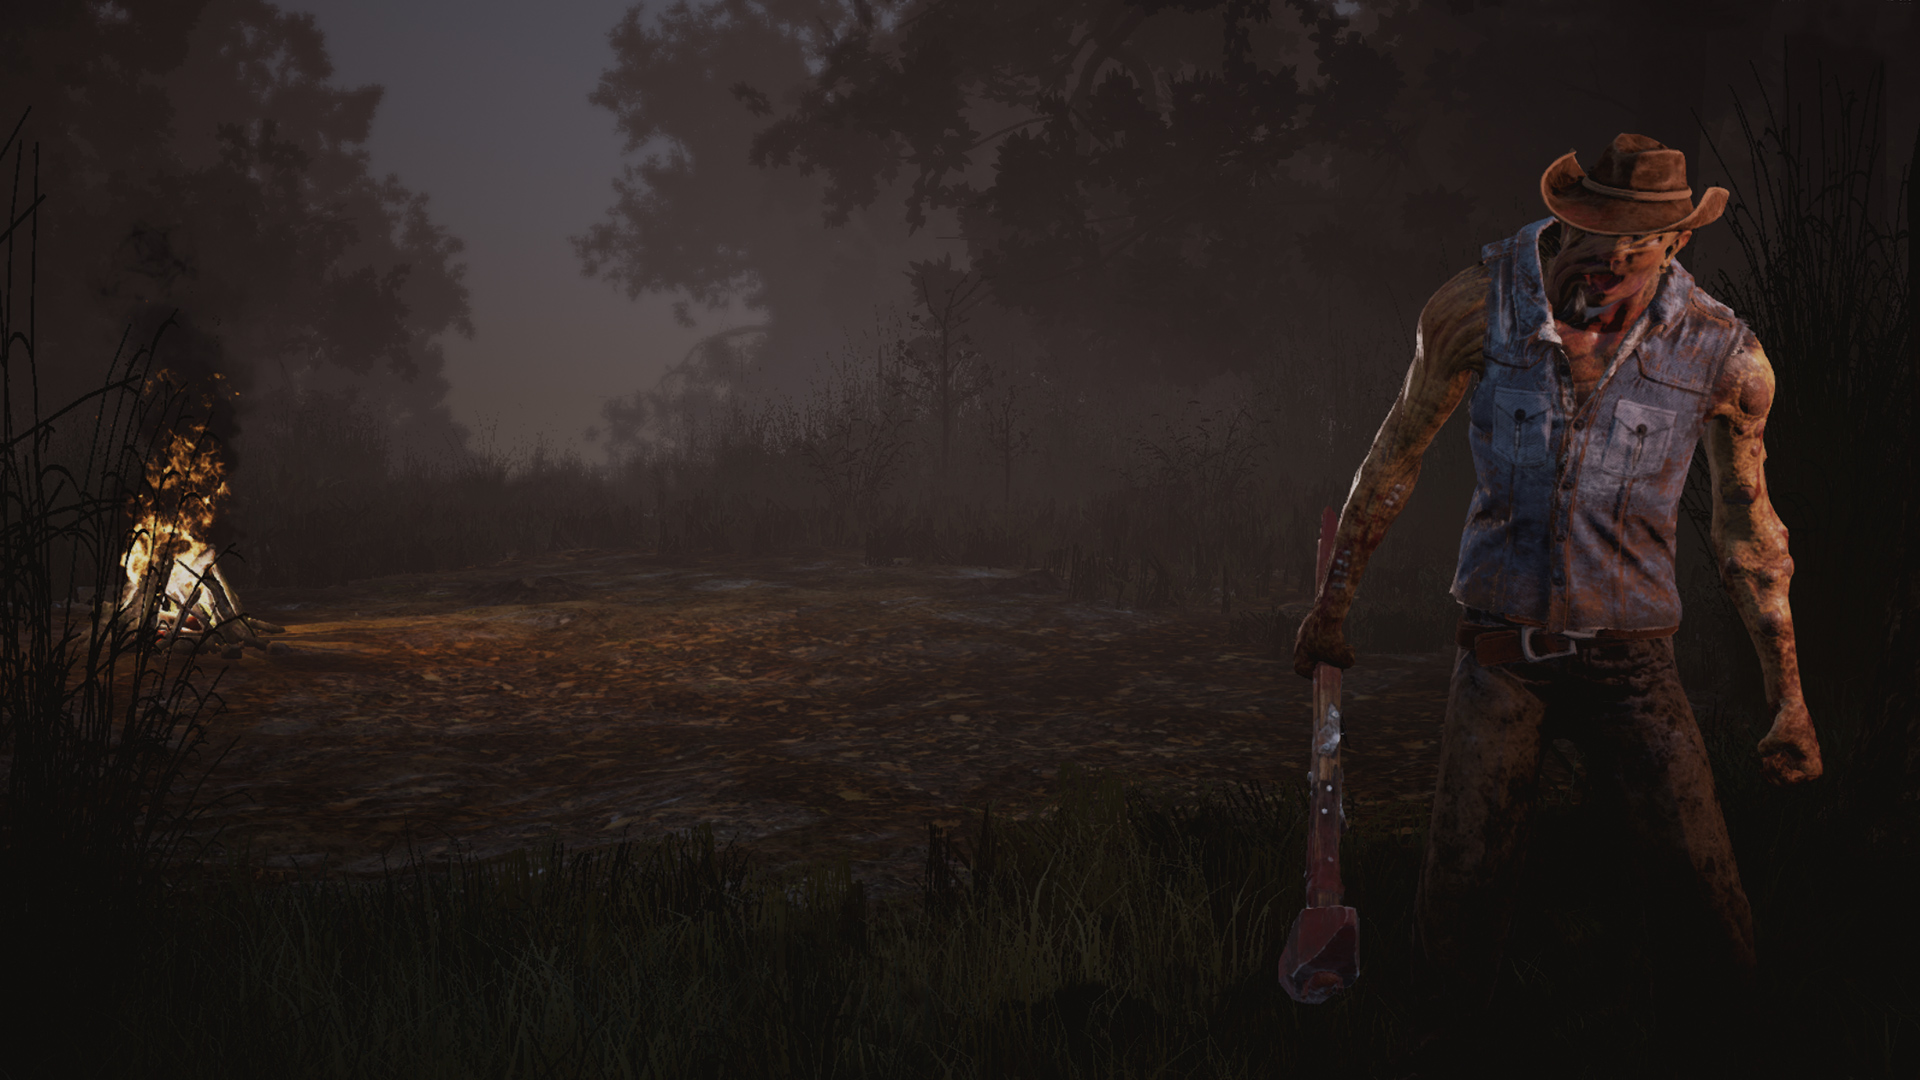 KHAiHOM.com - Dead by Daylight - The Bloodstained Sack